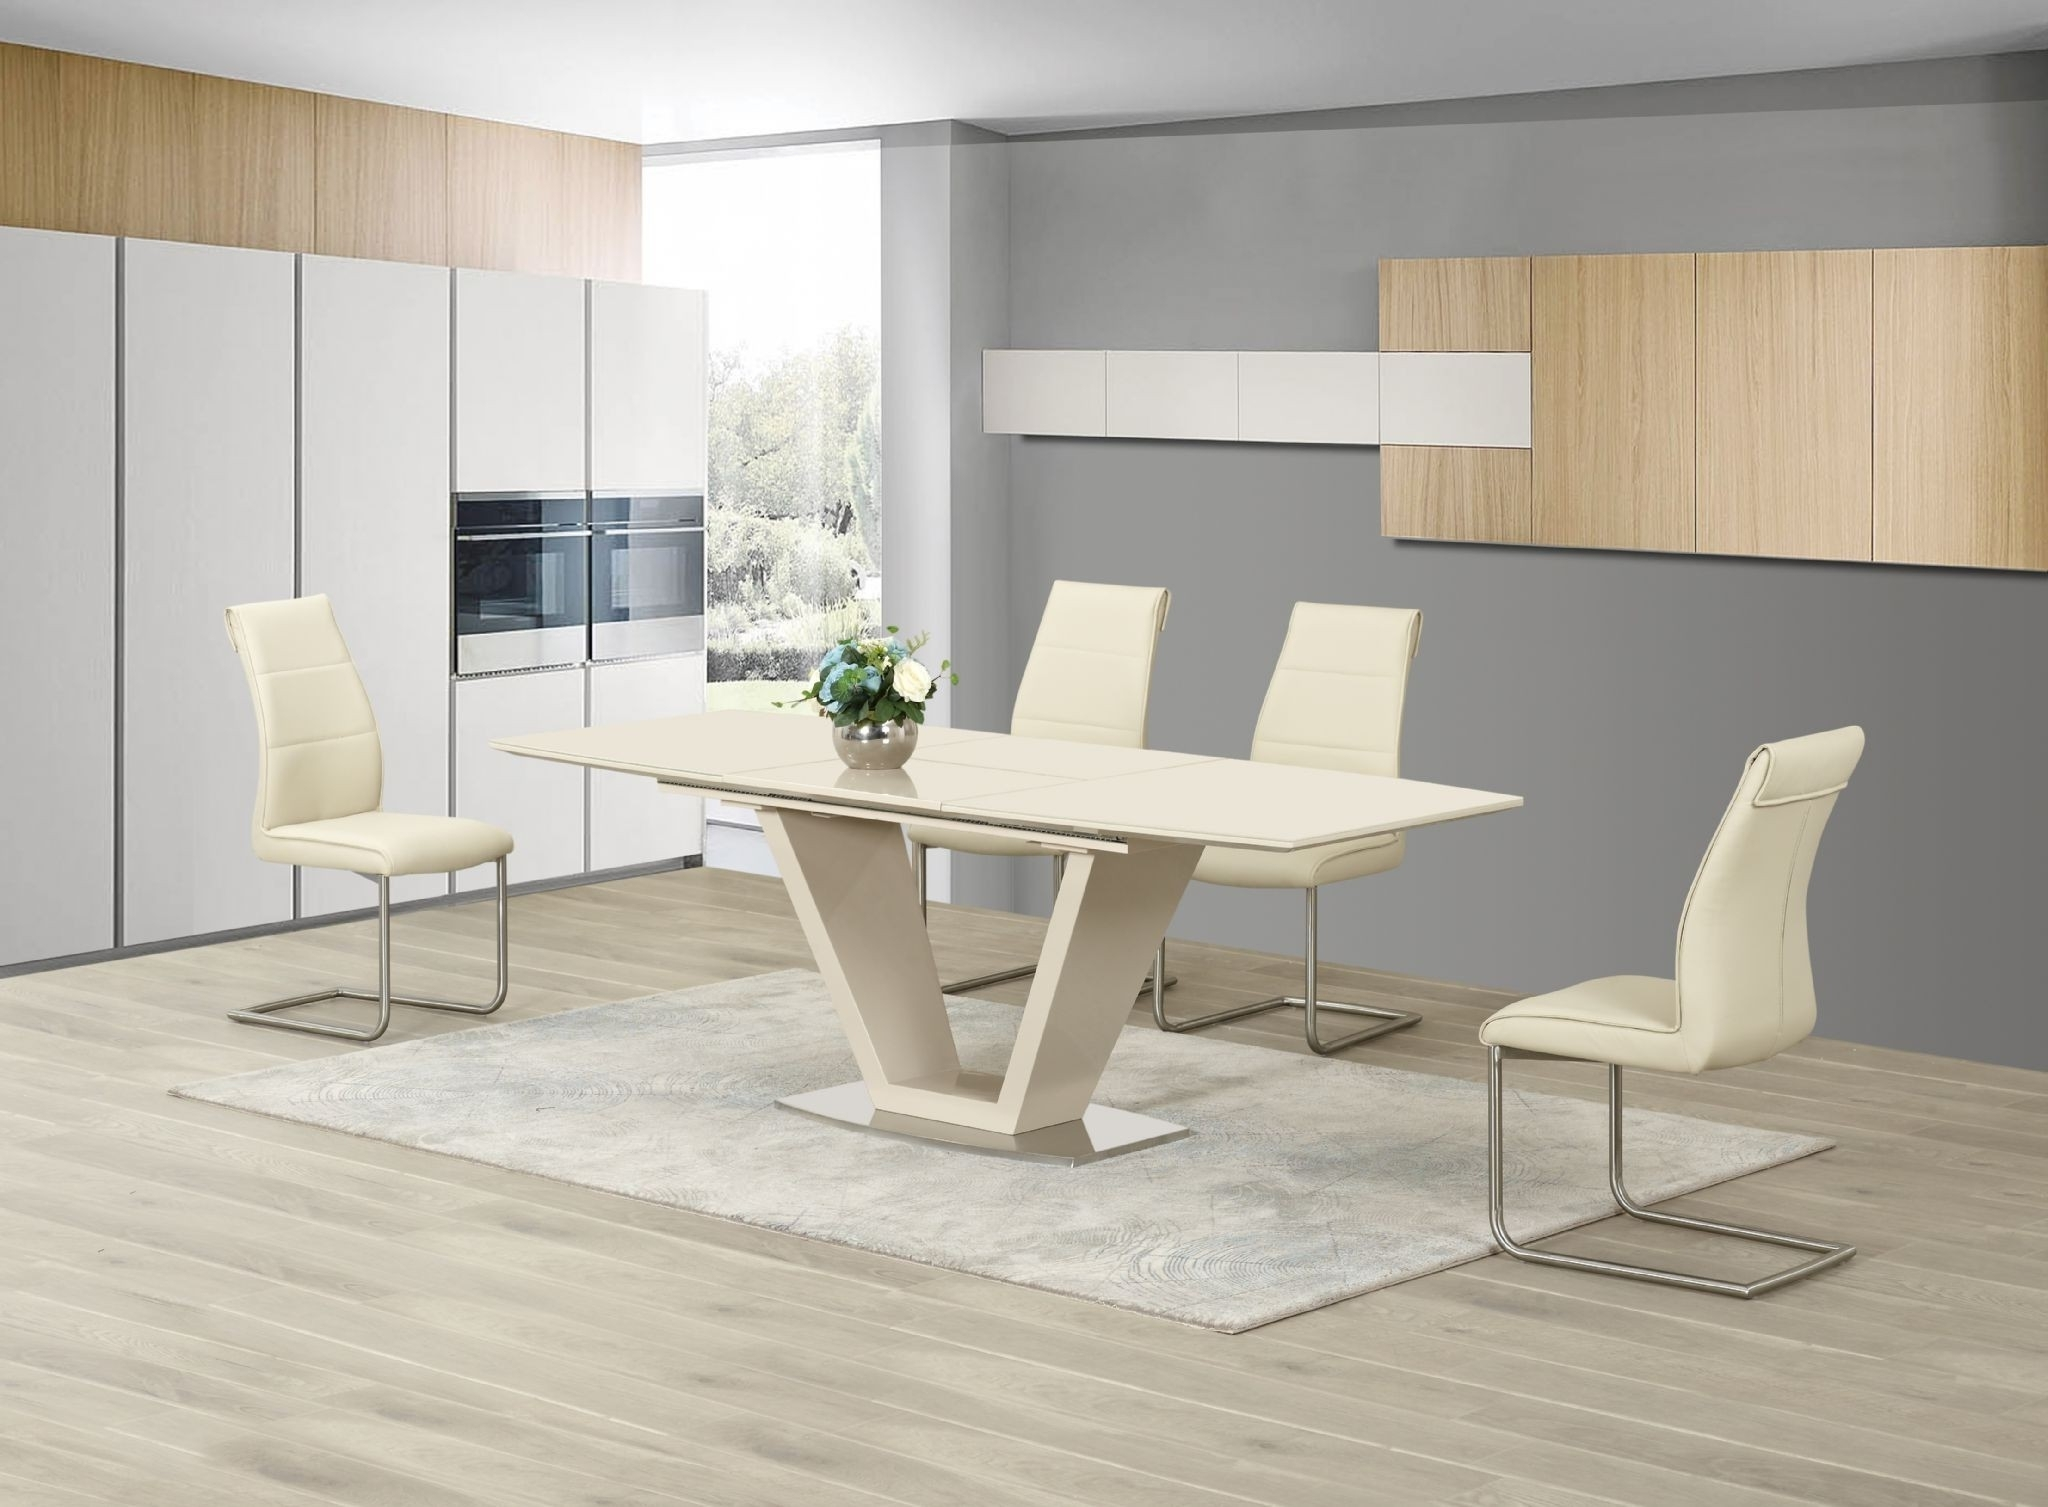 Large White Gloss Dining Tables With Most Recent Floris Cream Gloss Extending Dining Table 160 220Cm (View 8 of 25)